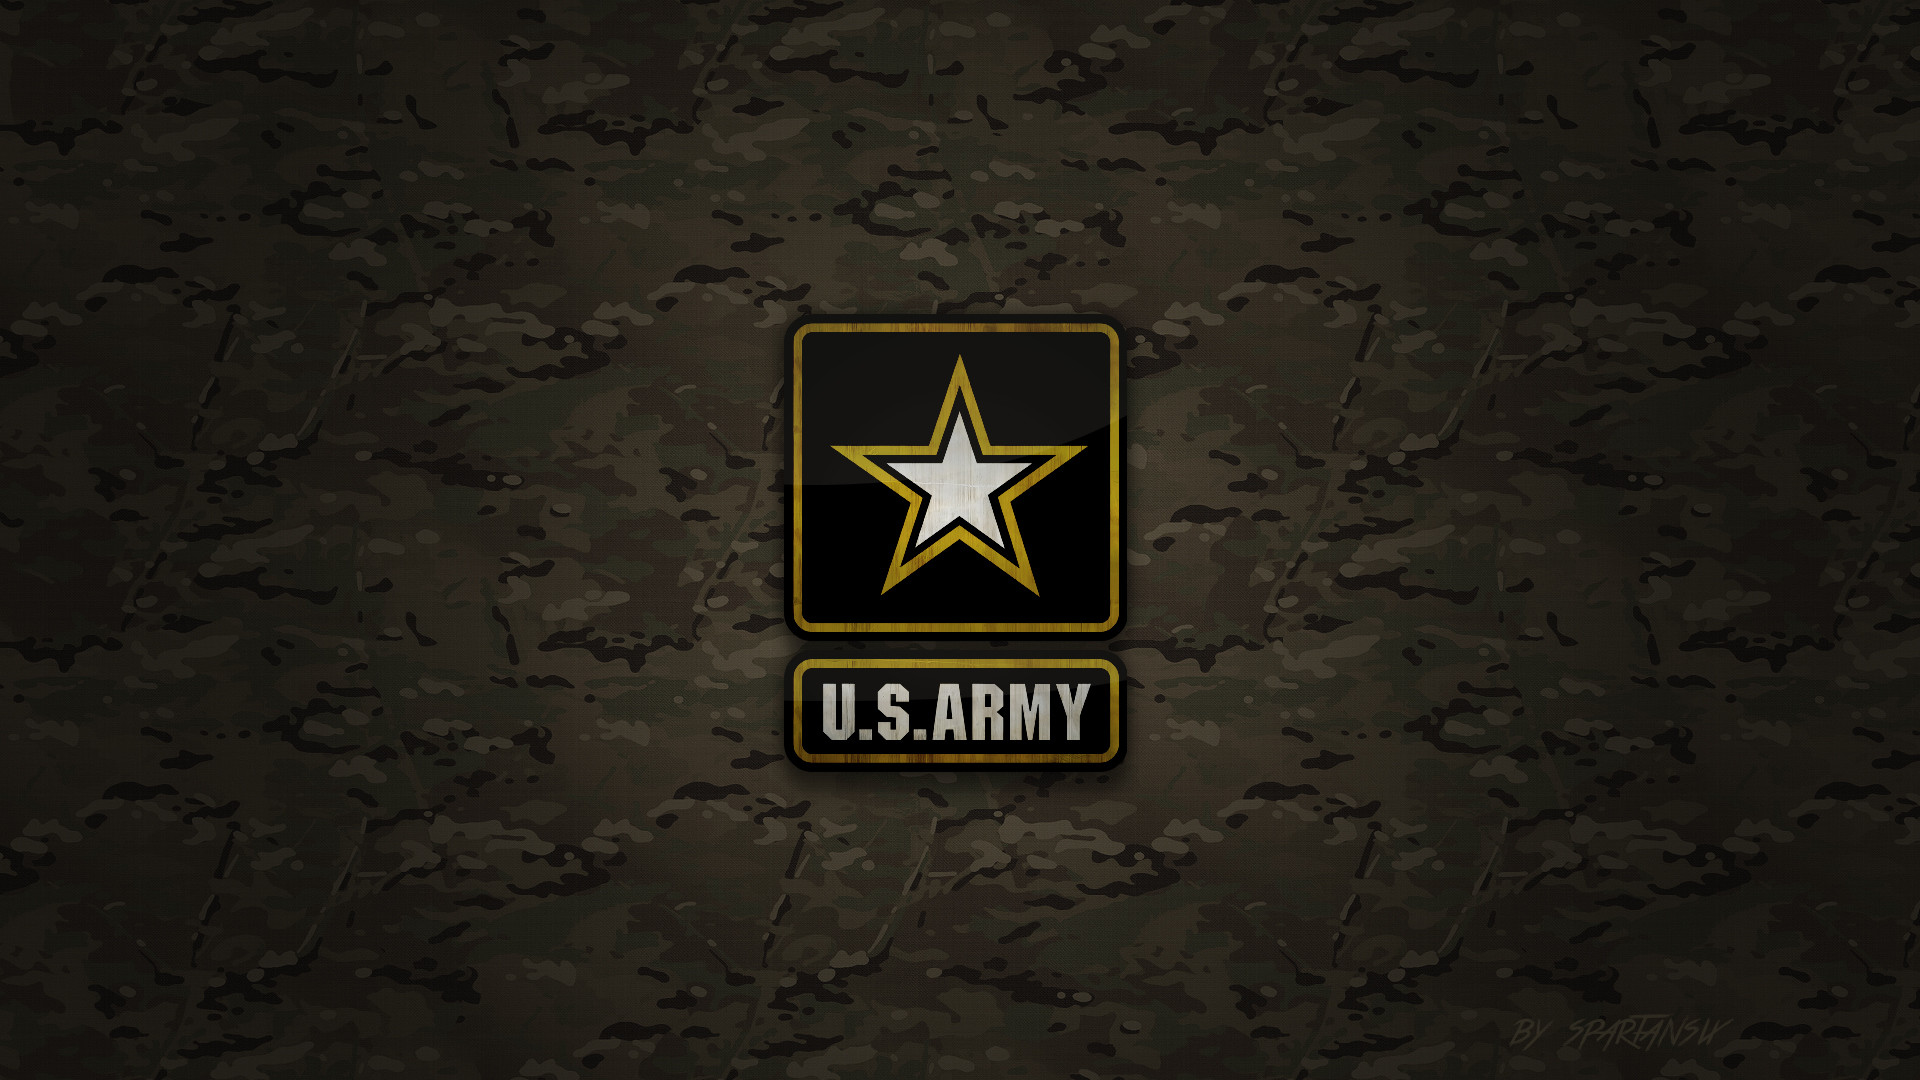 Go army wallpapers wallpapertag - Army wallpaper hd 1080p ...